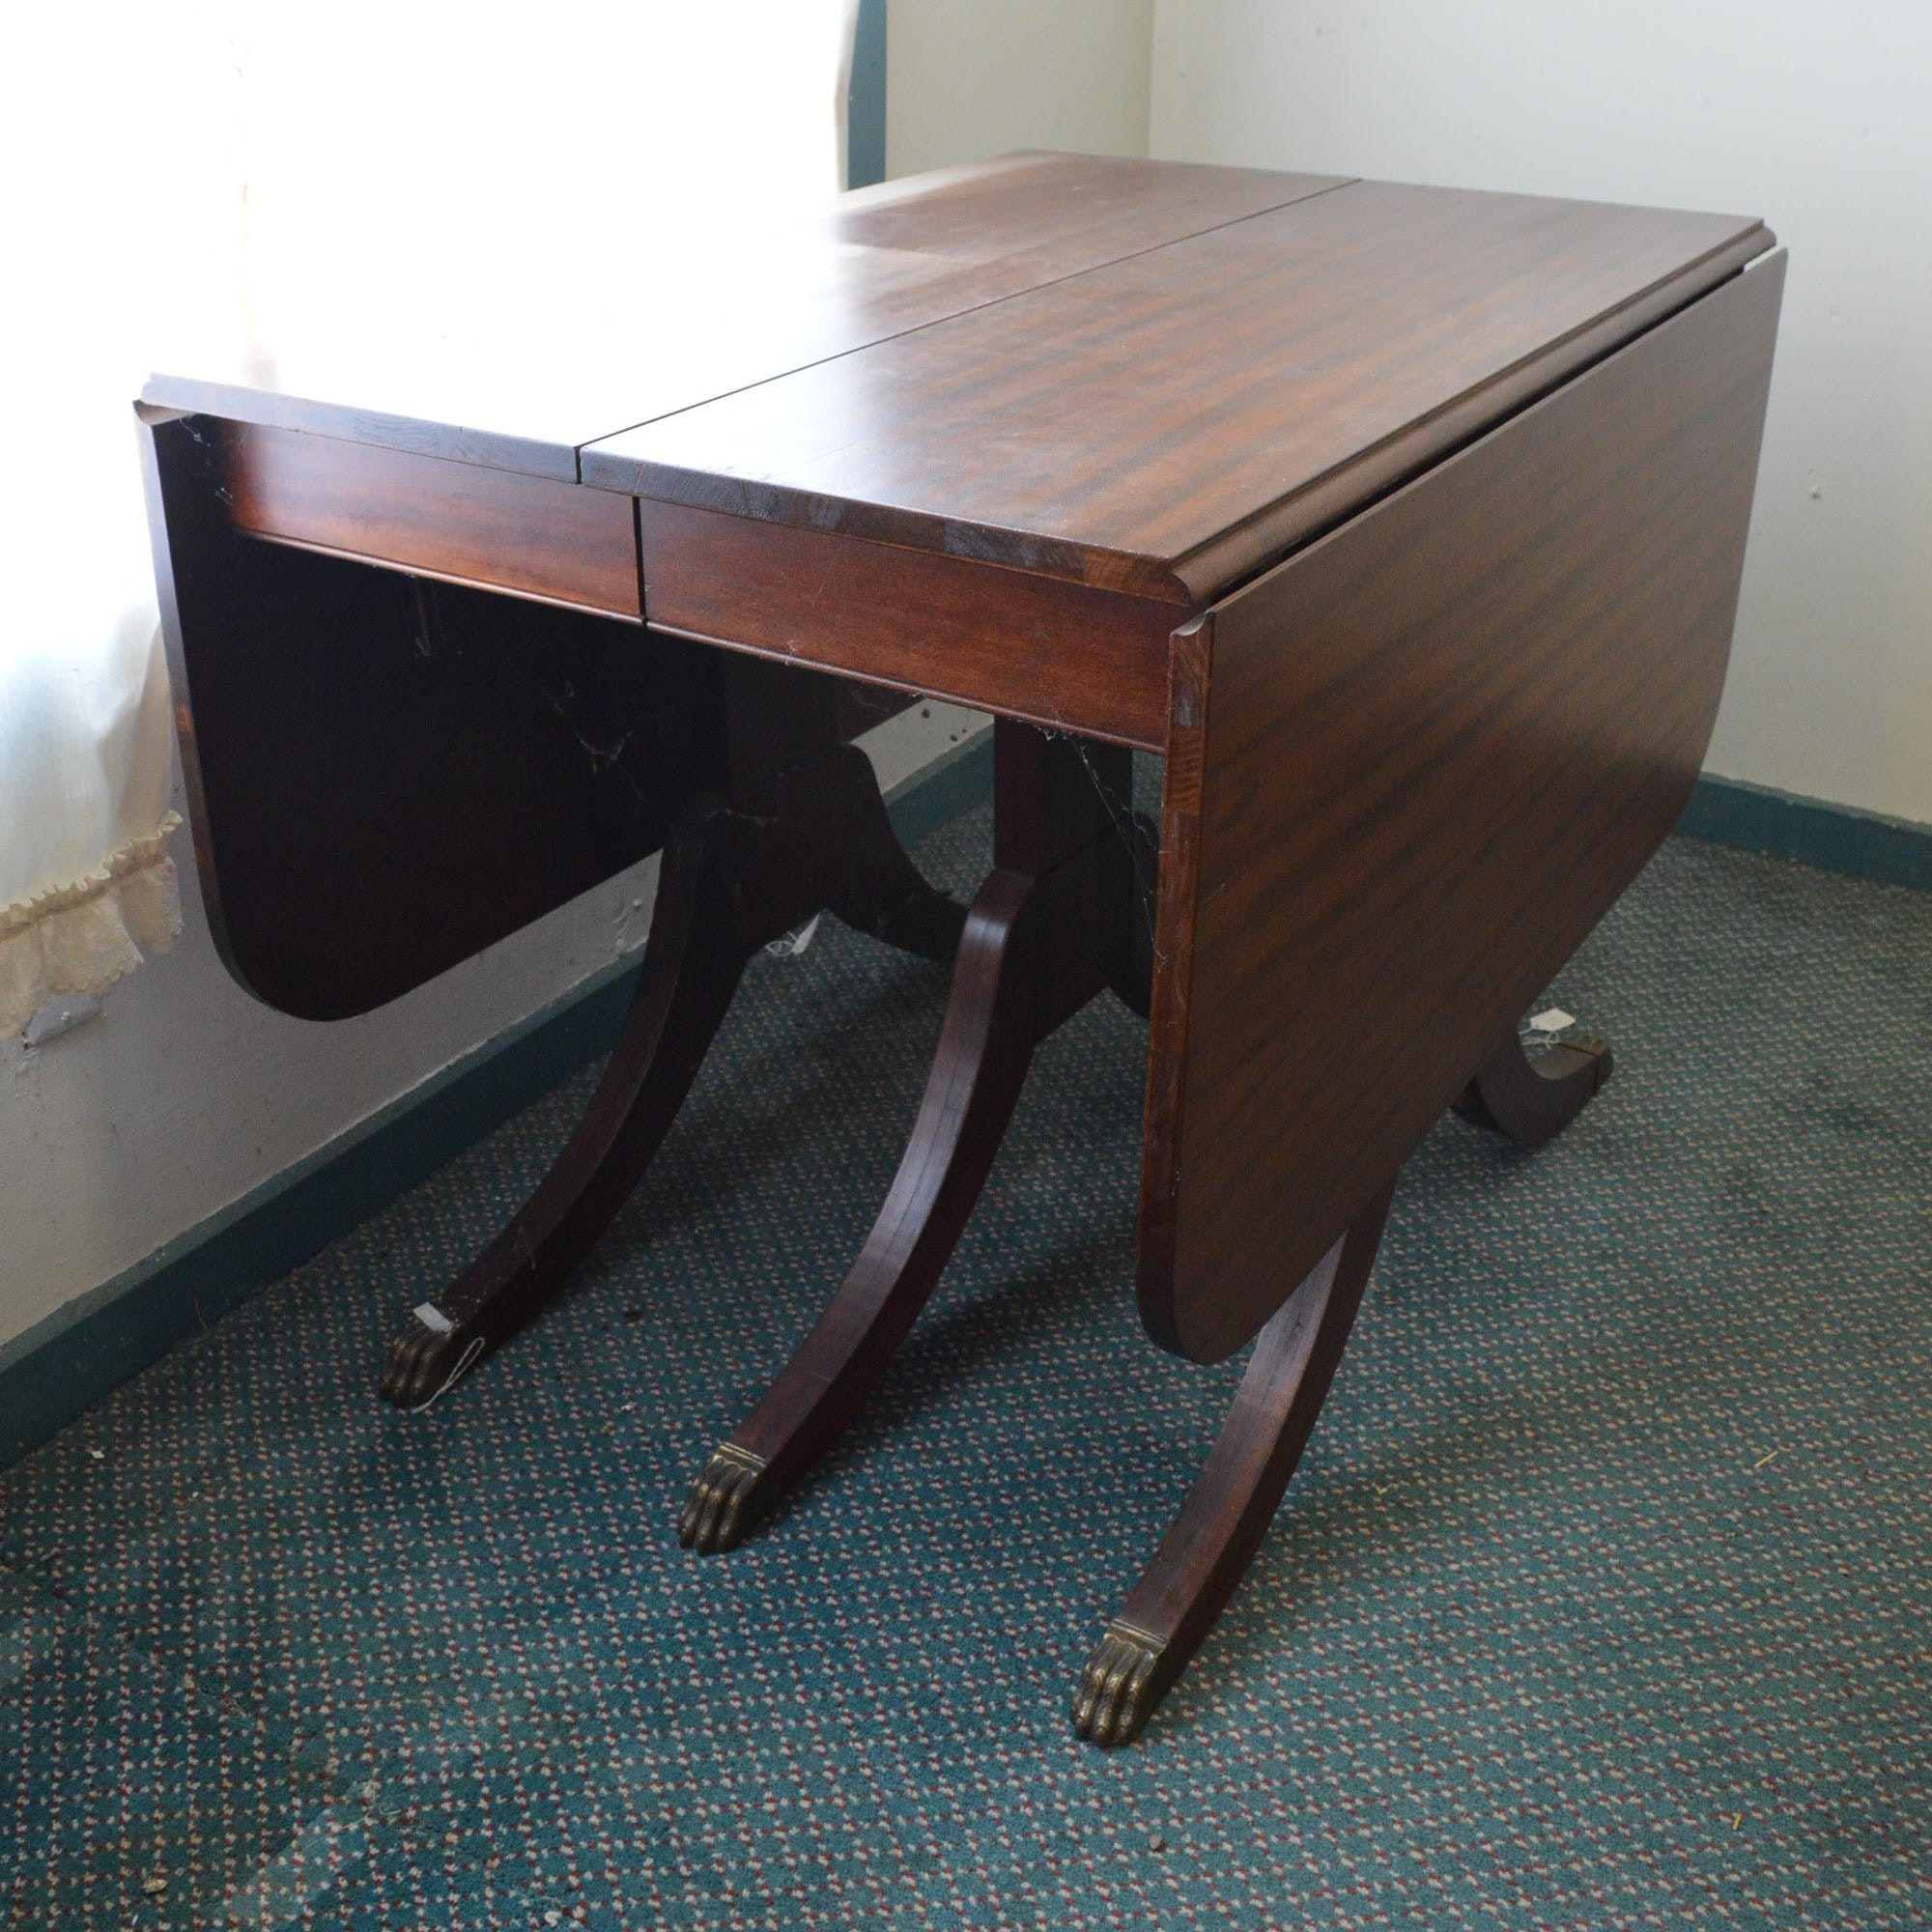 Duncan Phyfe Style Extending Mahogany Drop Leaf Table